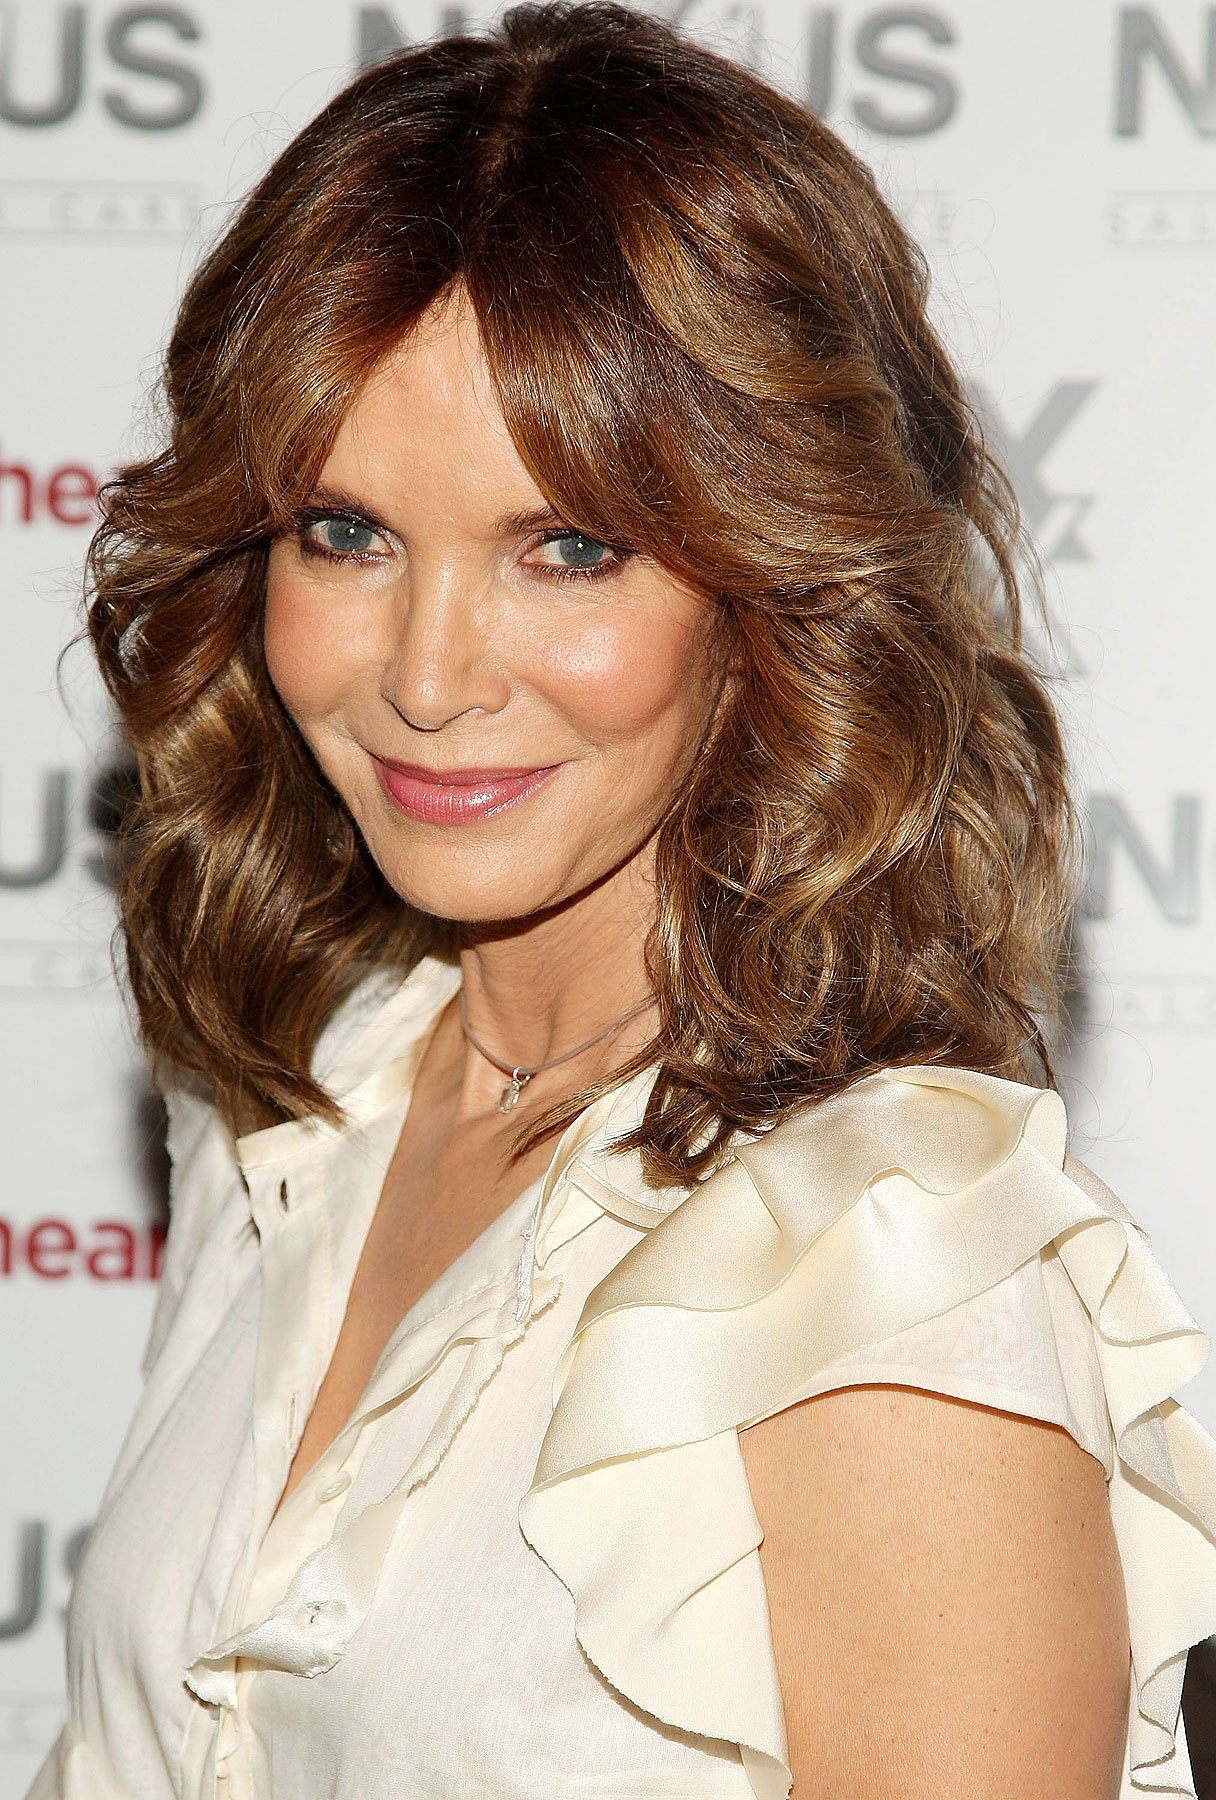 Jaclyn Smith Attempts Suicide, Is In Critical Condition